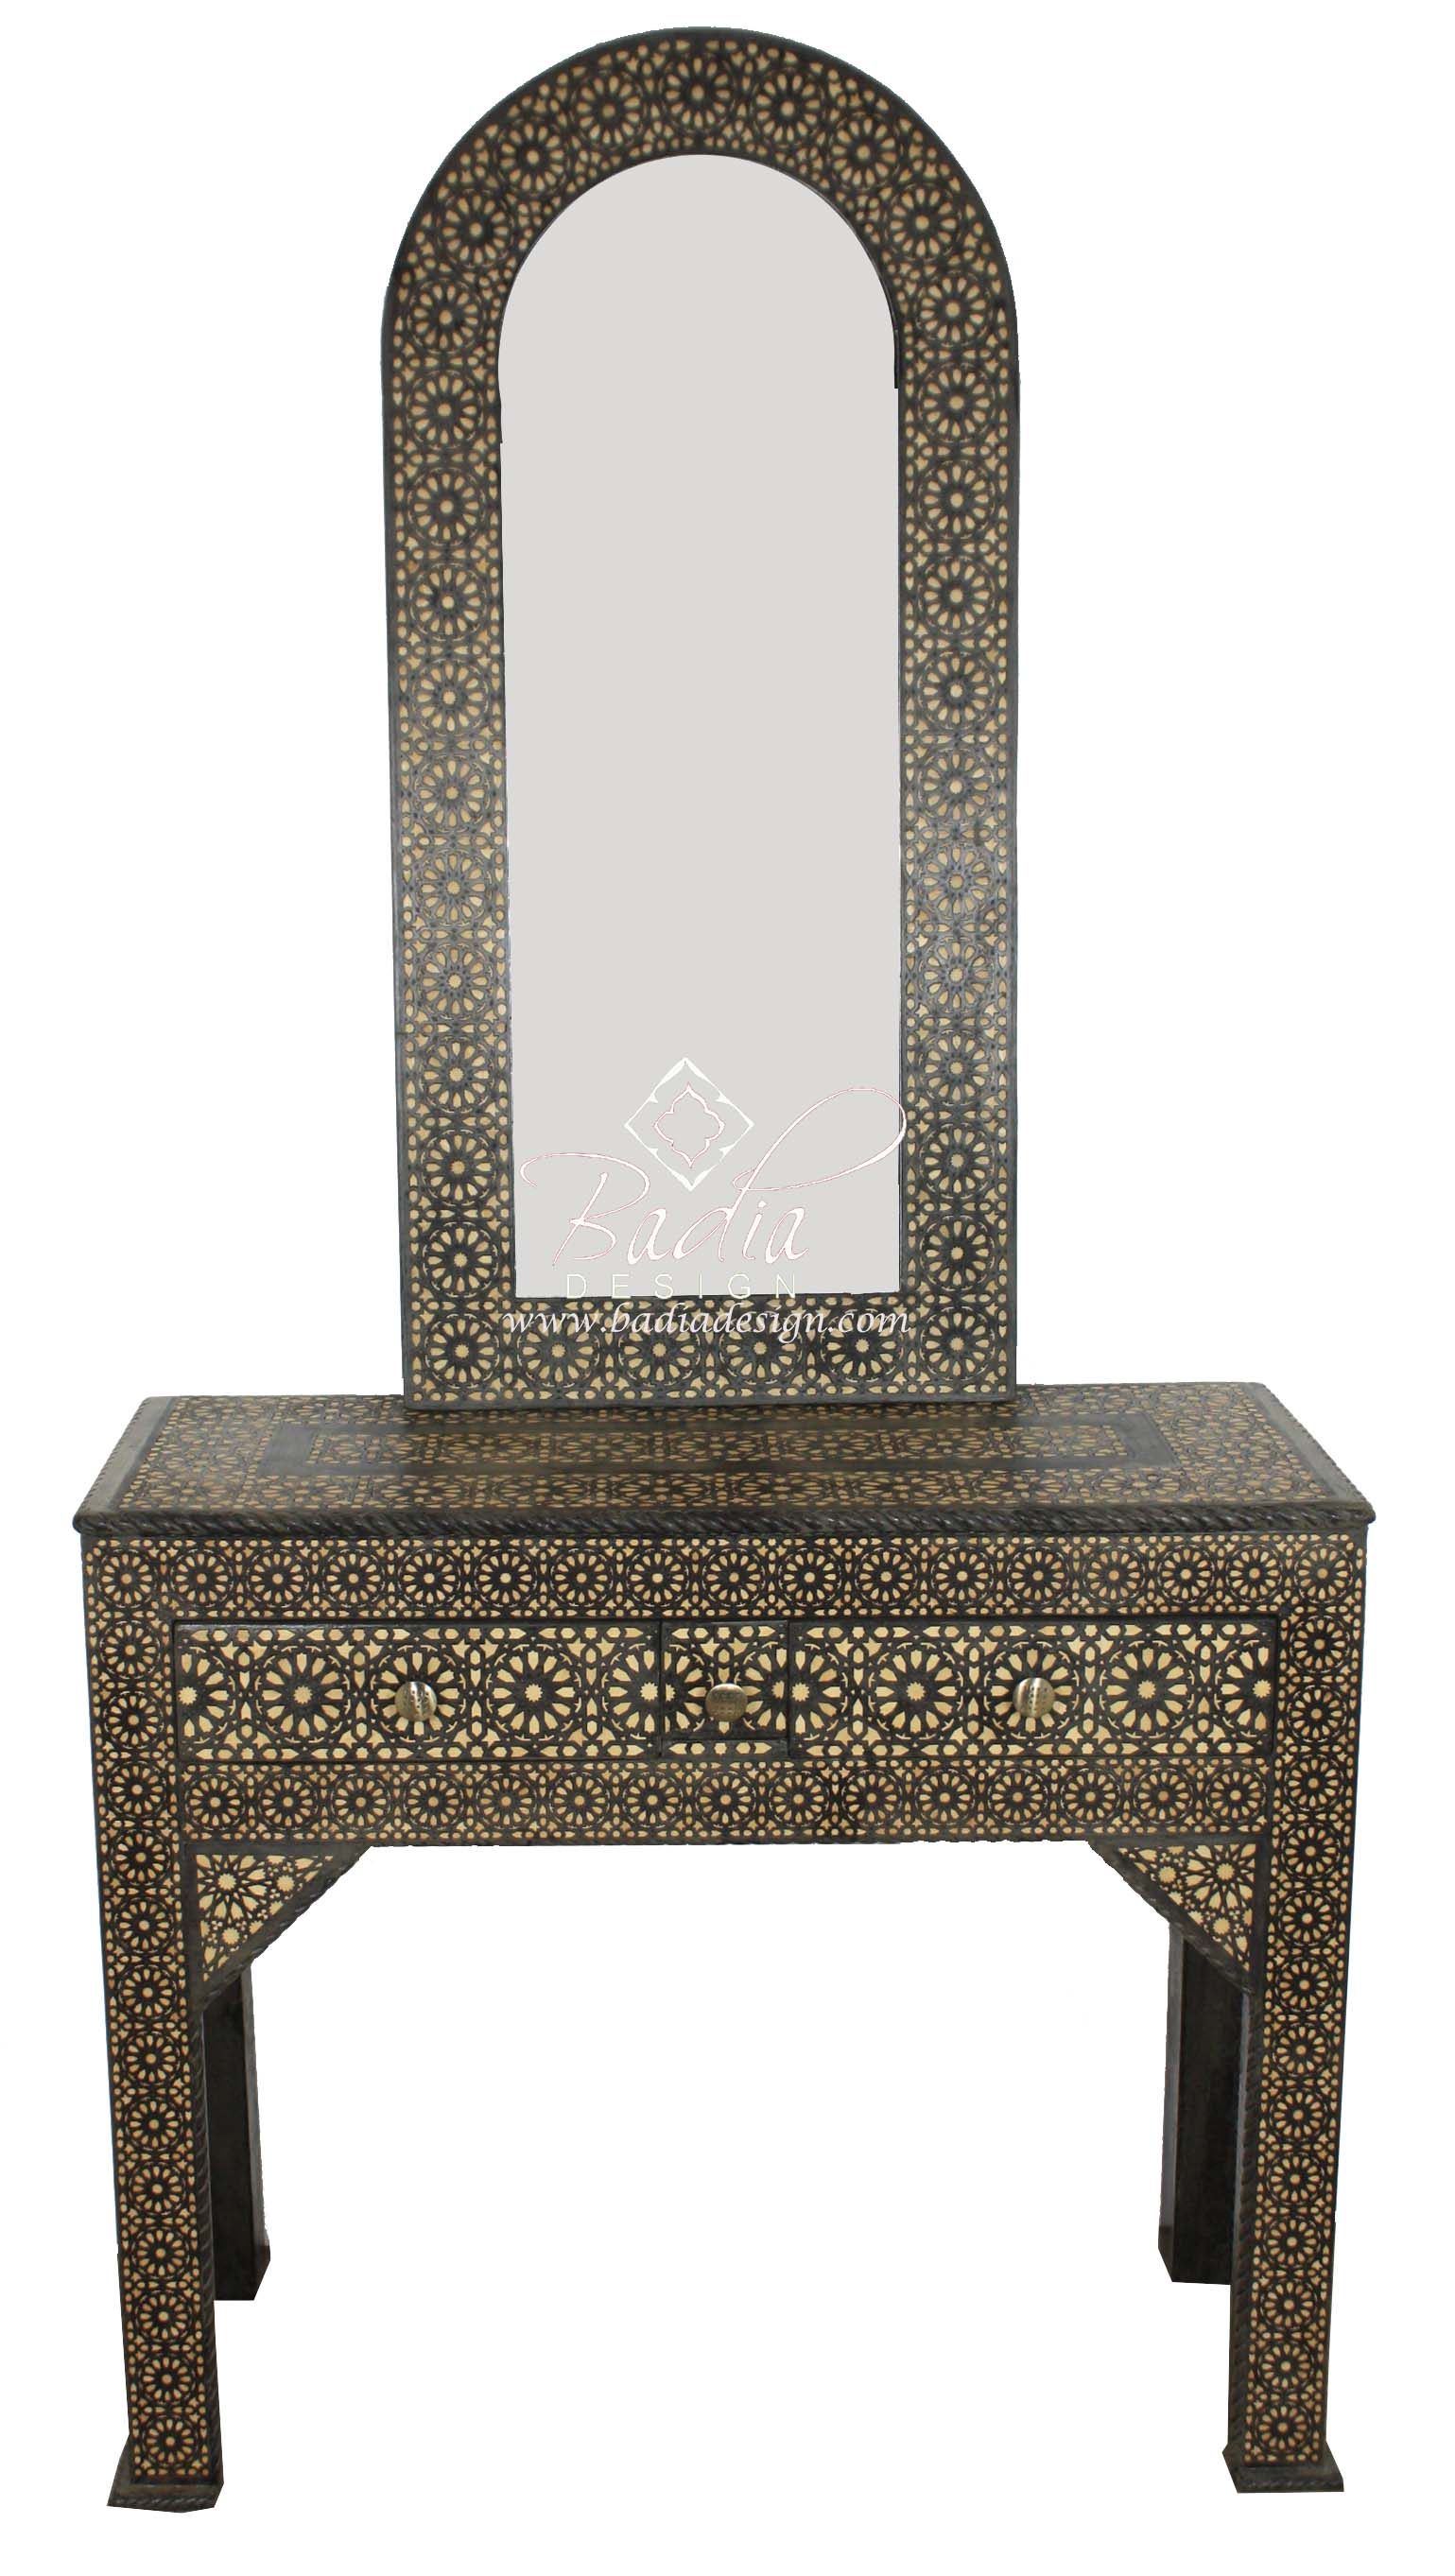 moroccan-vanity-and-mirror-set-mb-ca063-1.jpg